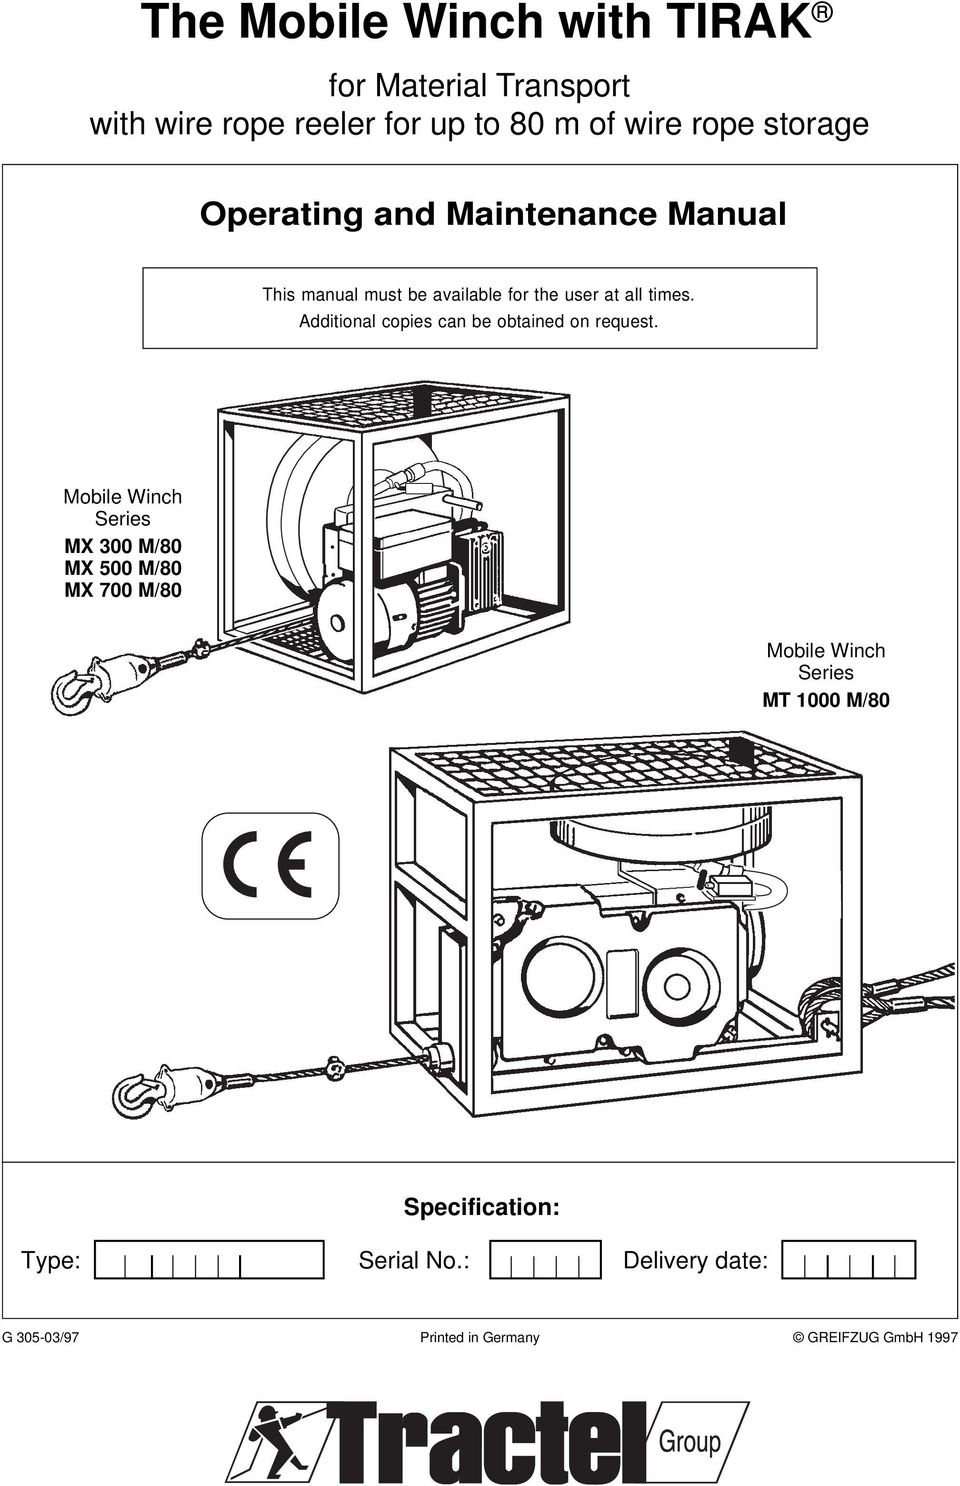 The Mobile Winch with TIRAK - PDF on